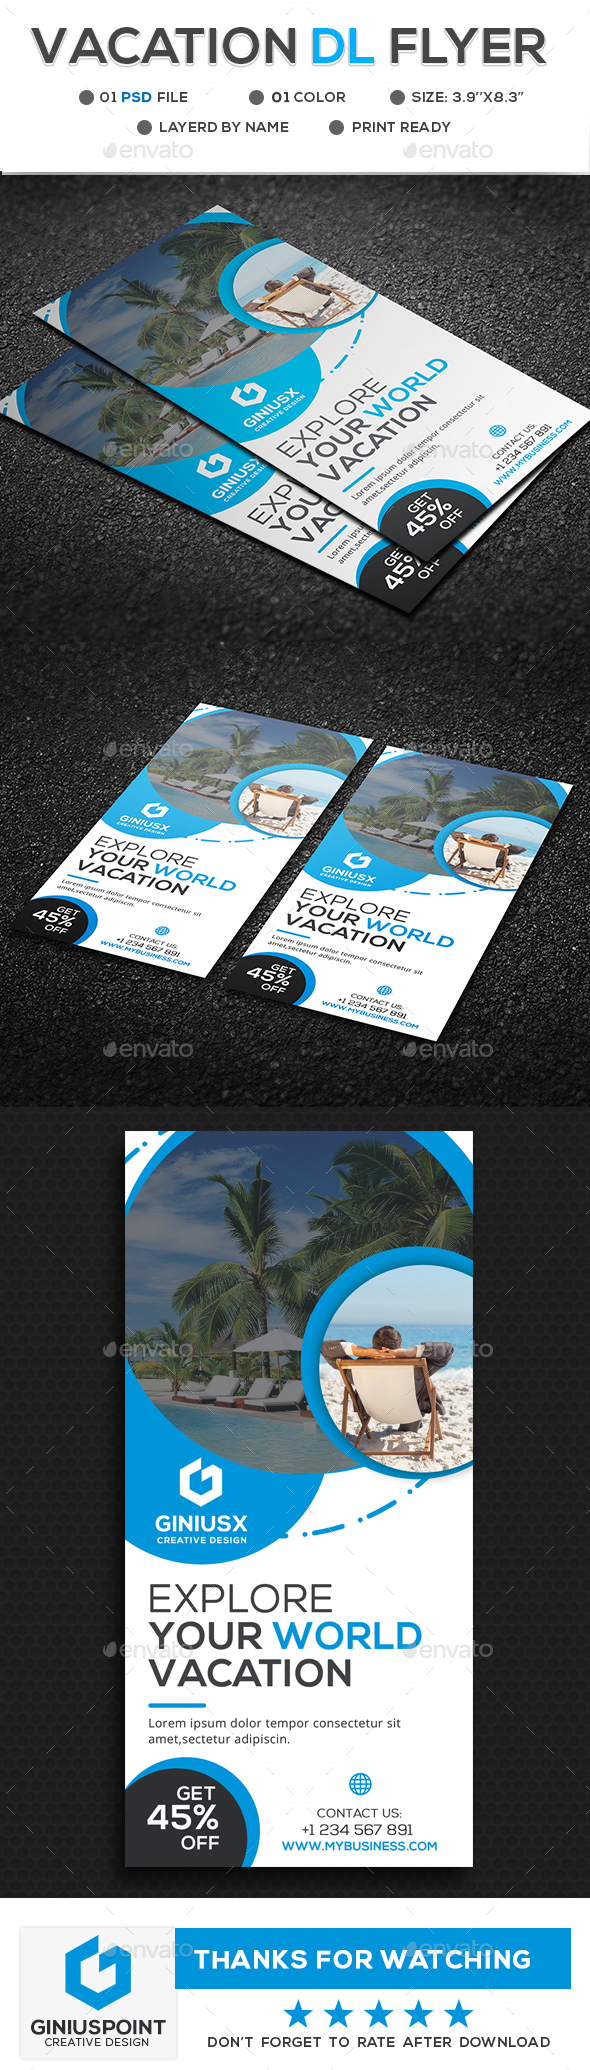 Vacation DL Flyer Template - Flyers Print Templates